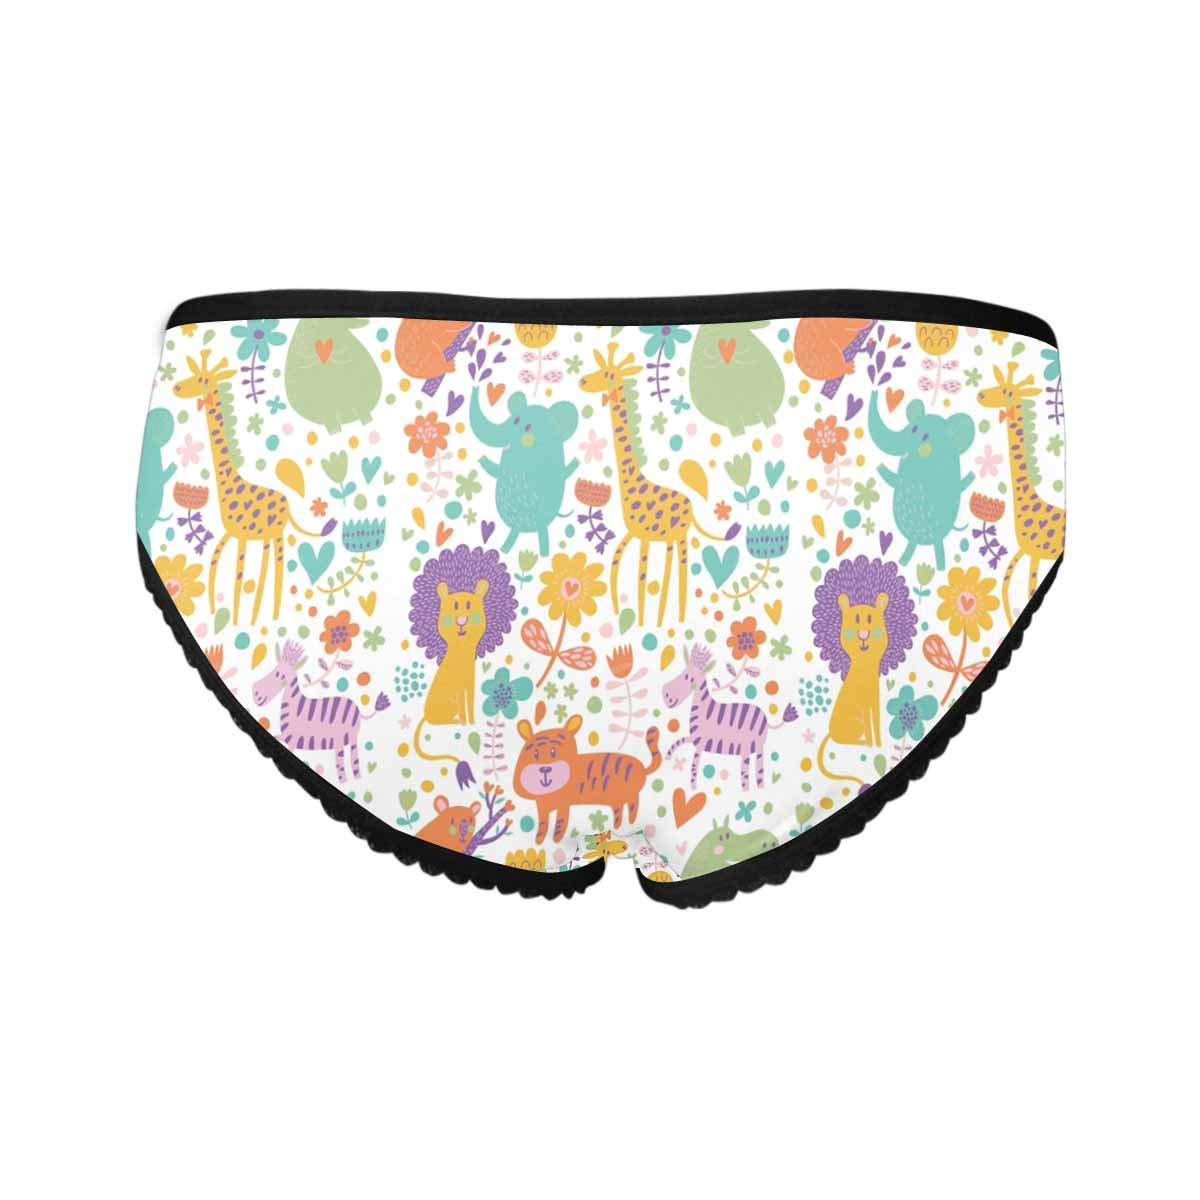 XS-XXL INTERESTPRINT Womens All Over Print High-Cut Briefs